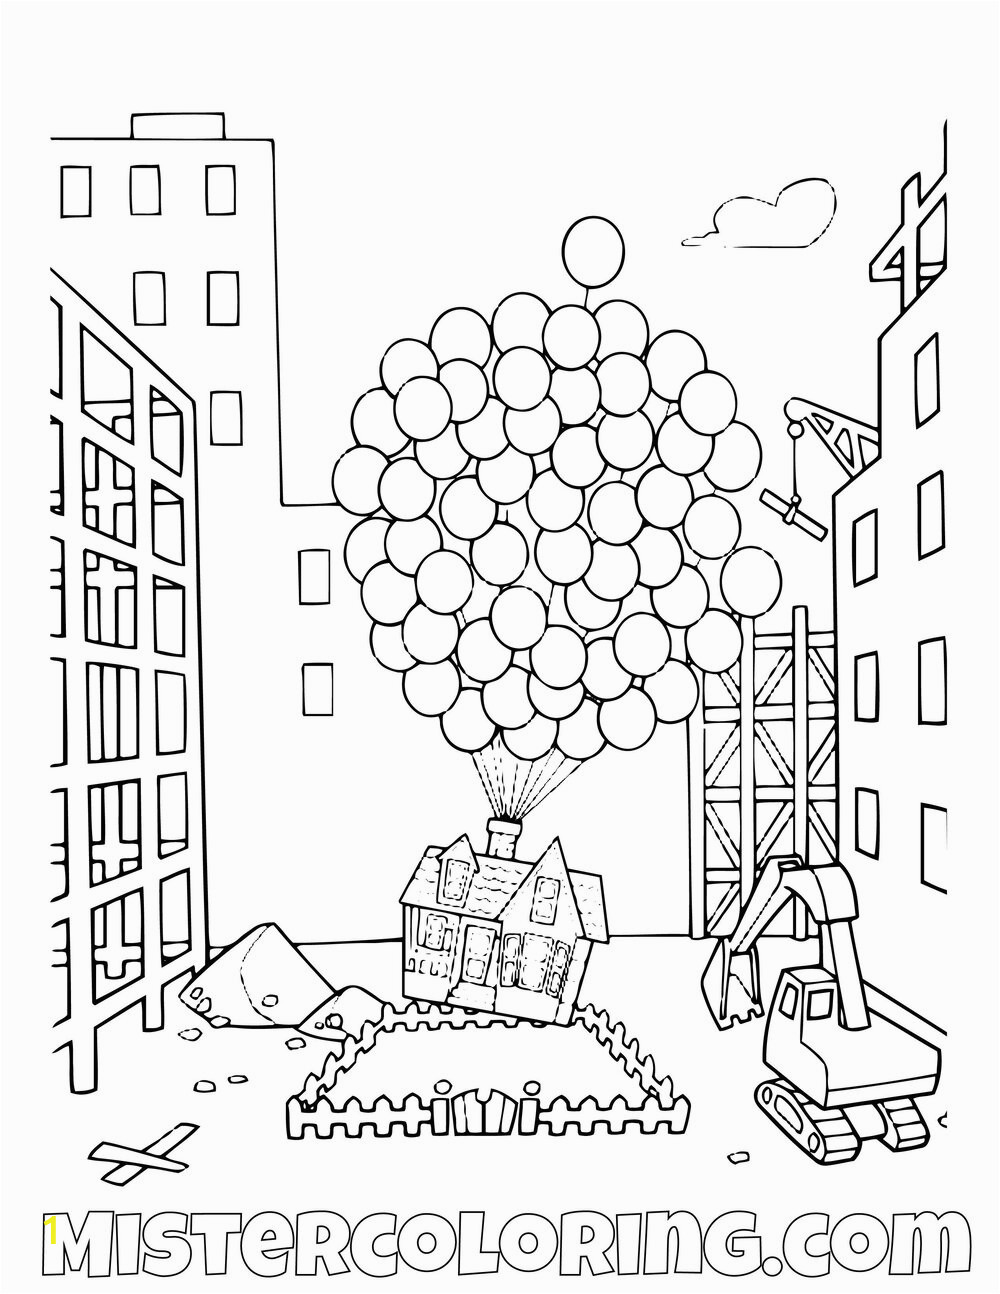 Carl House Disney Pixar Up Movie Coloring Pages For Kids